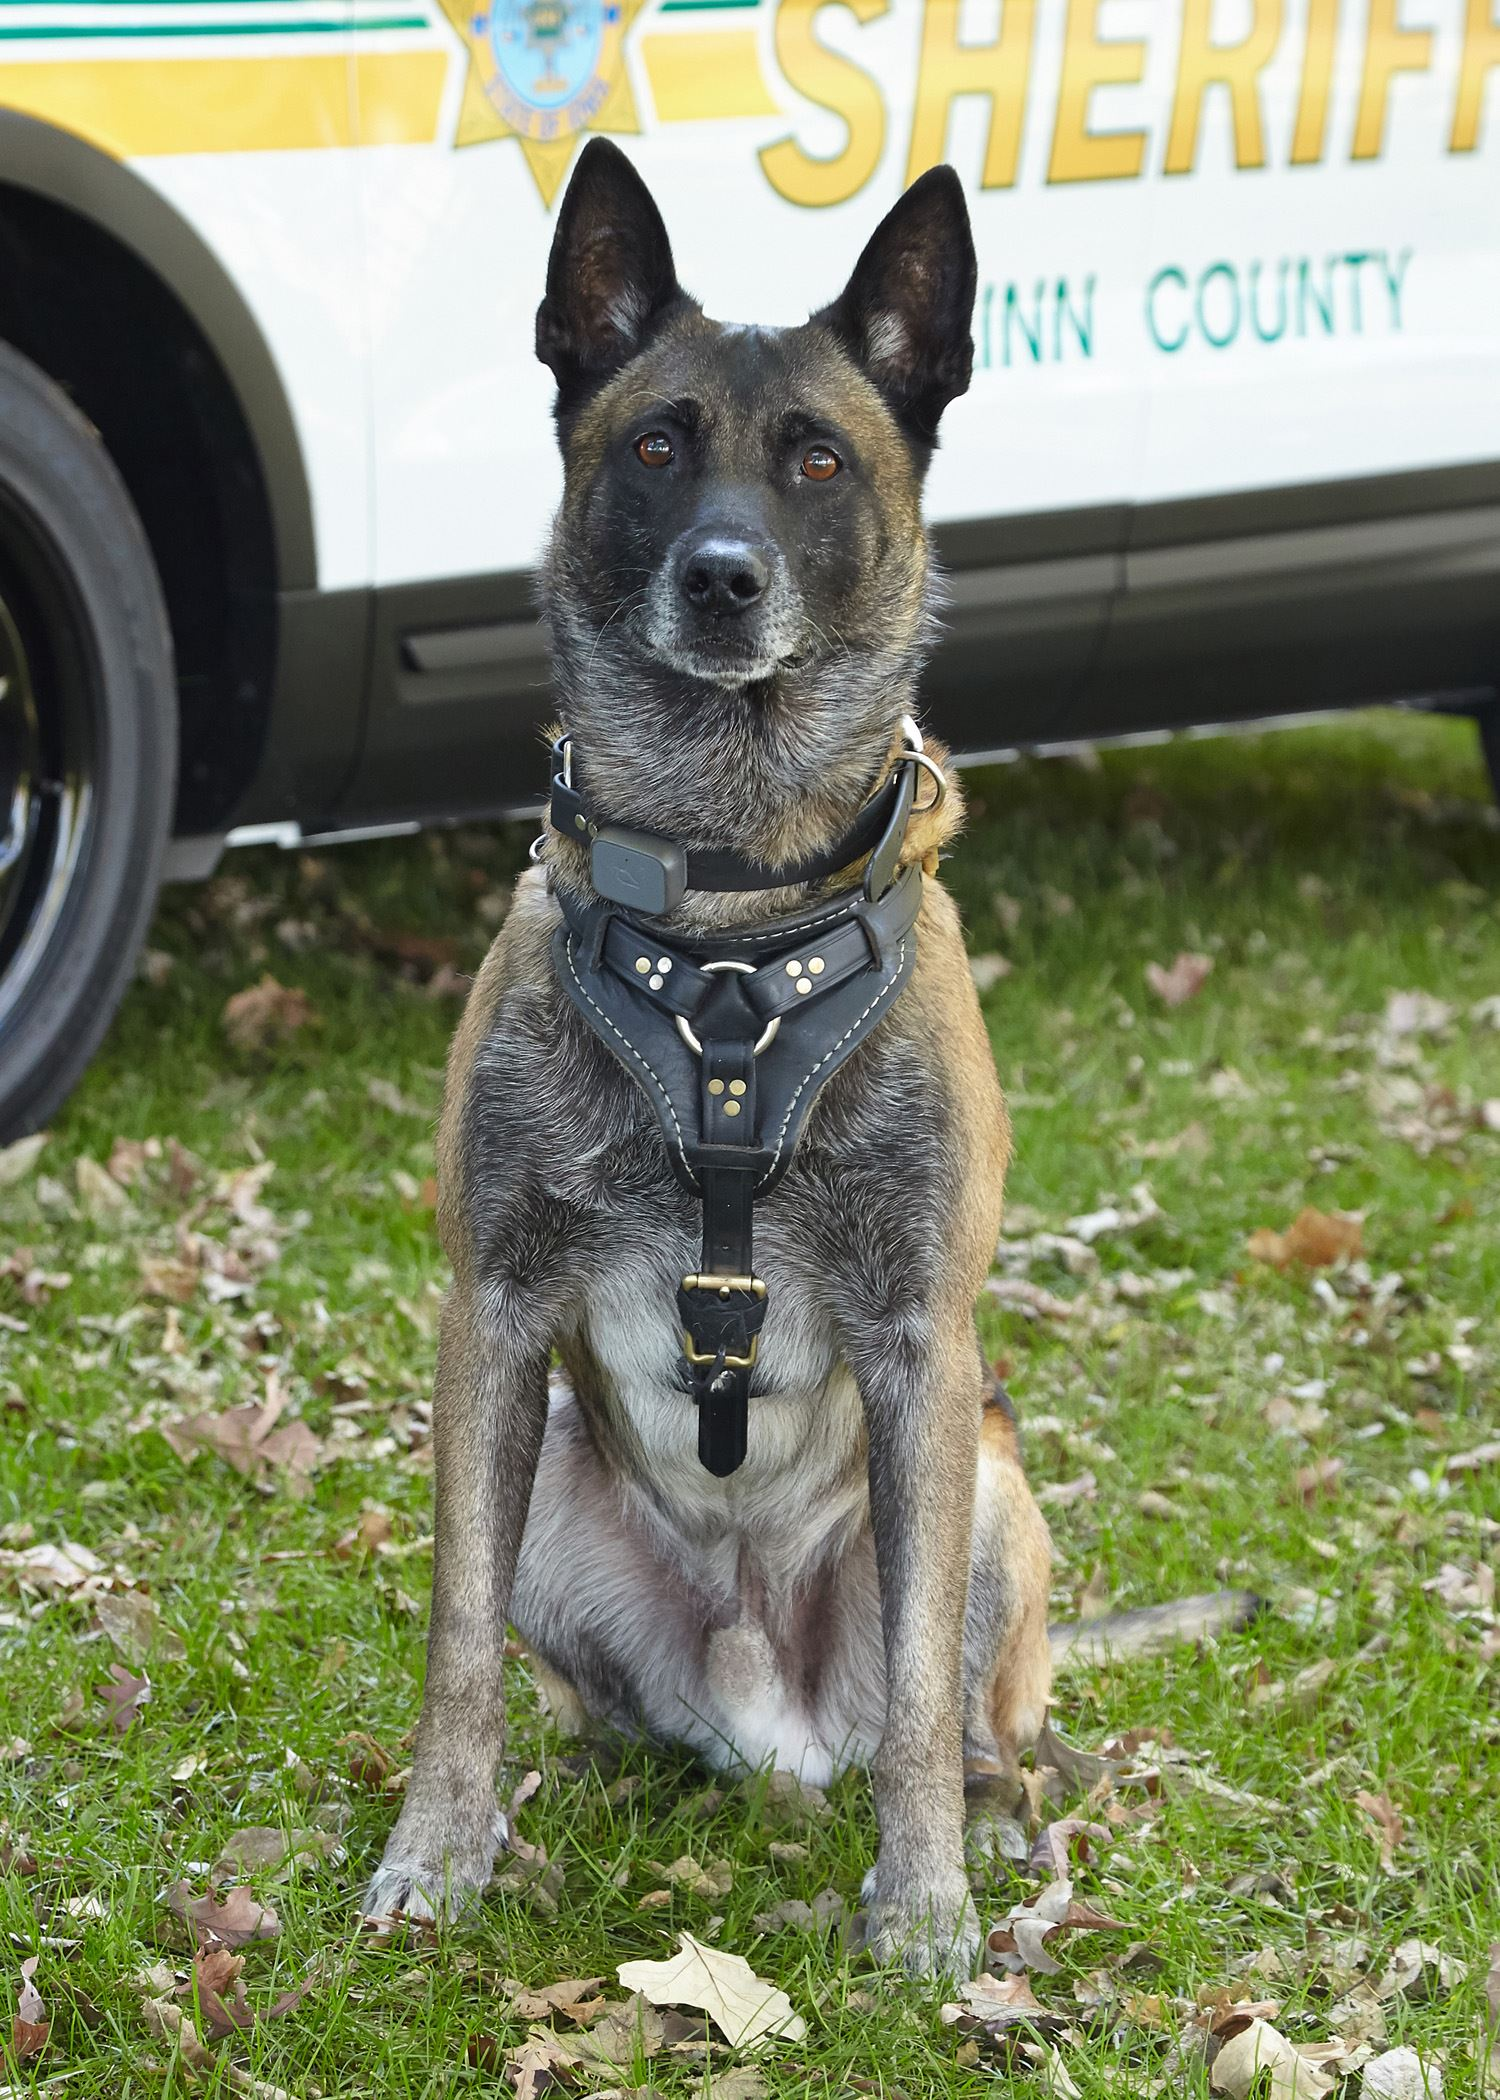 Linn County Sheriff's Office K9 Gucci